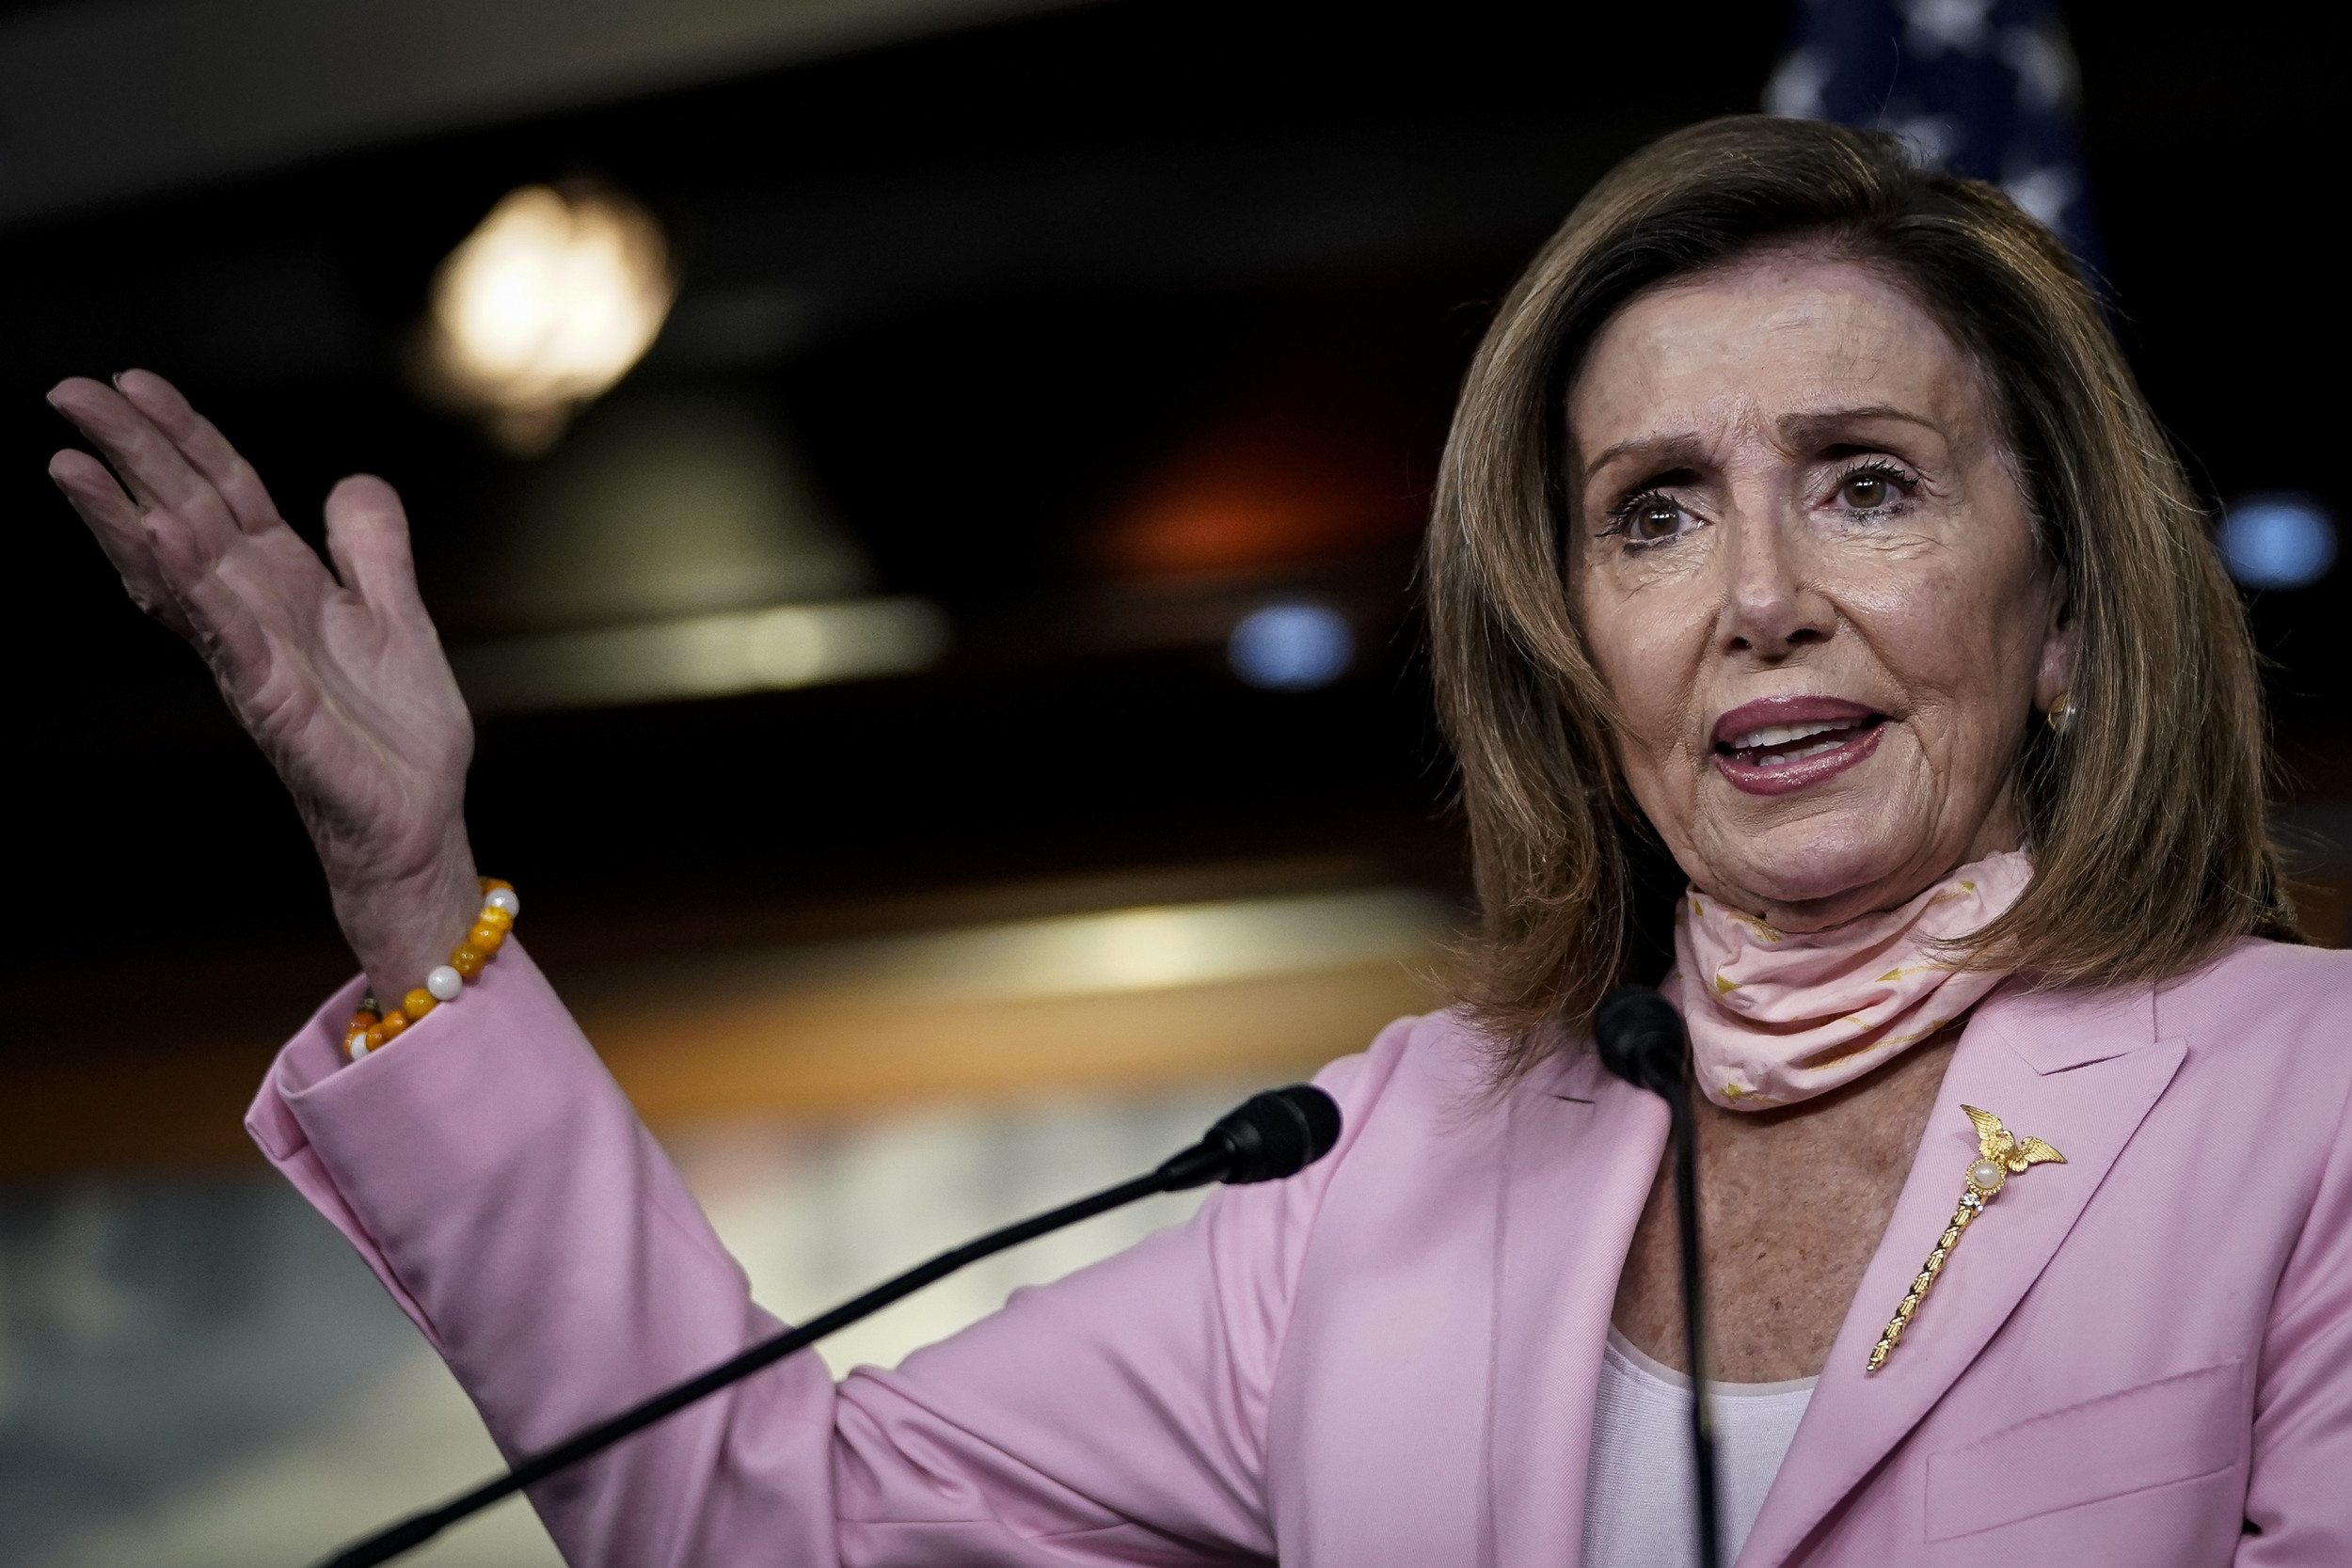 Trump's appointees voted against him, Pelosi says as president criticizes Supreme Court